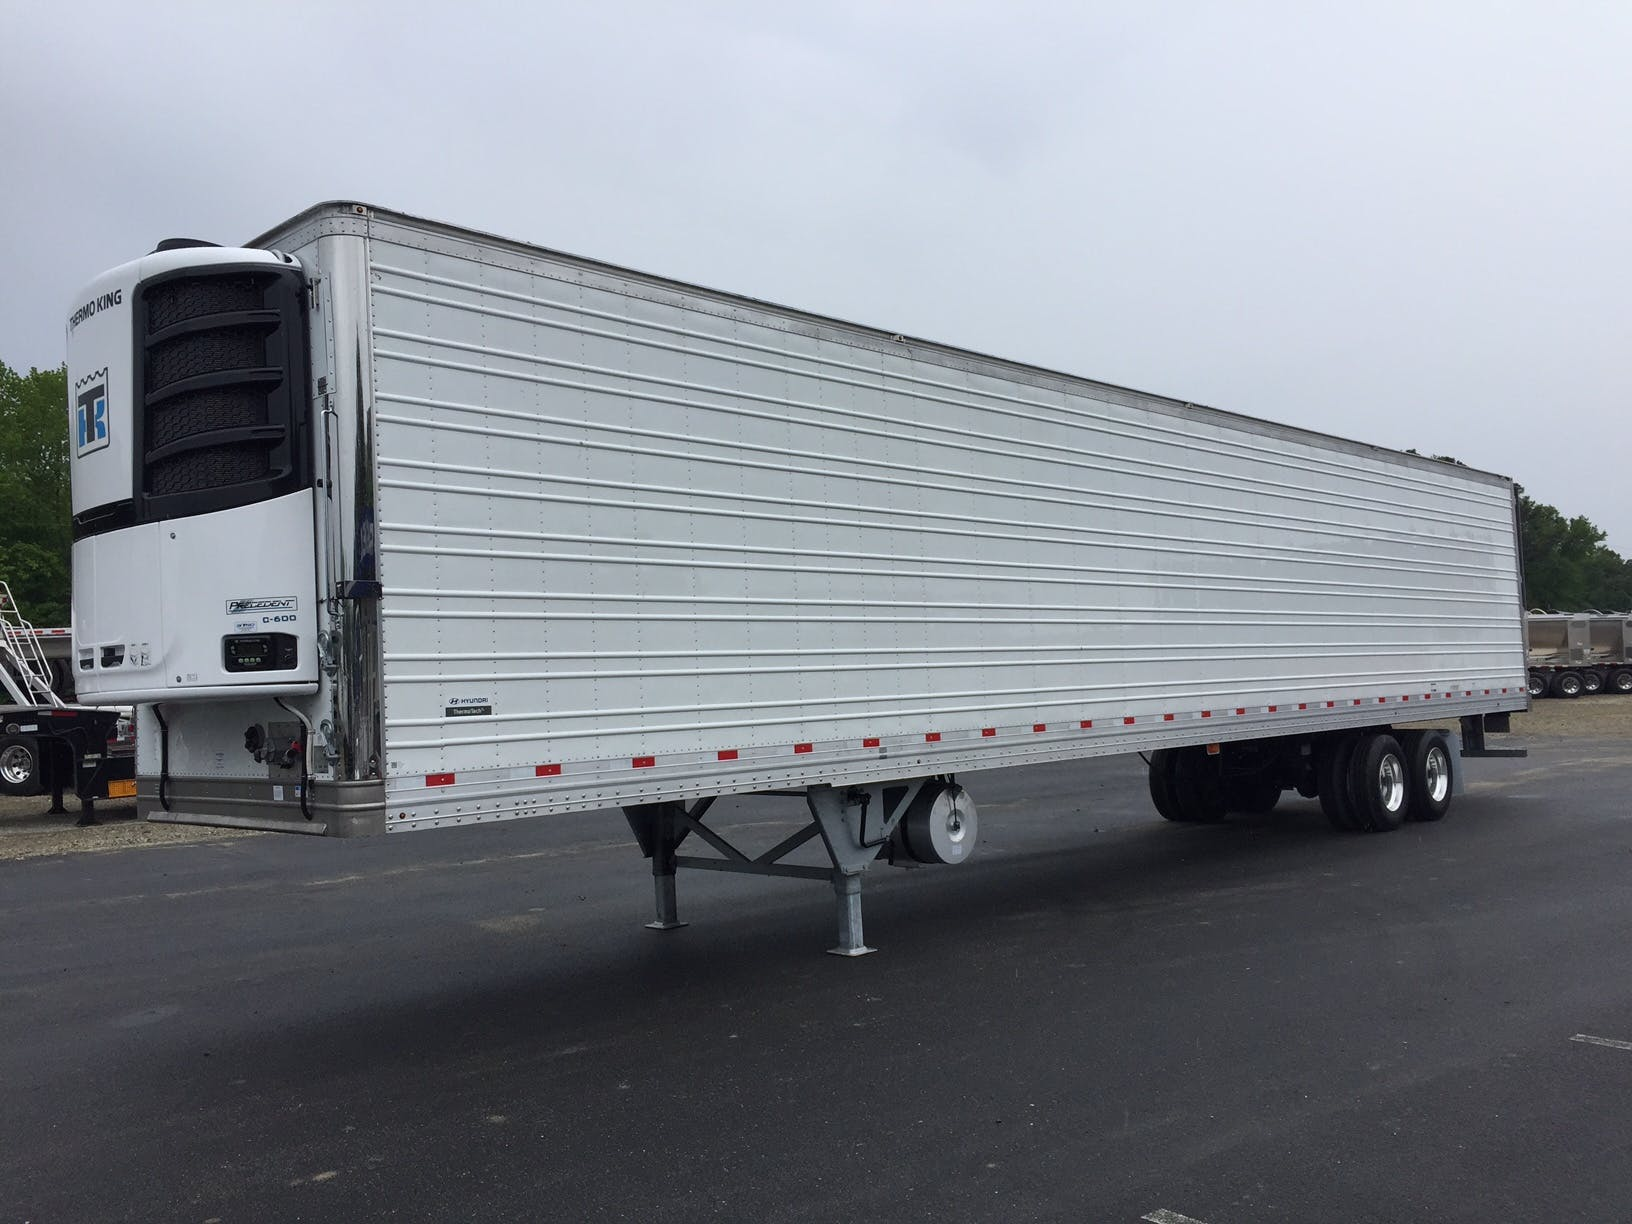 2020 HYUNDAI REEFER TRAILER #643533